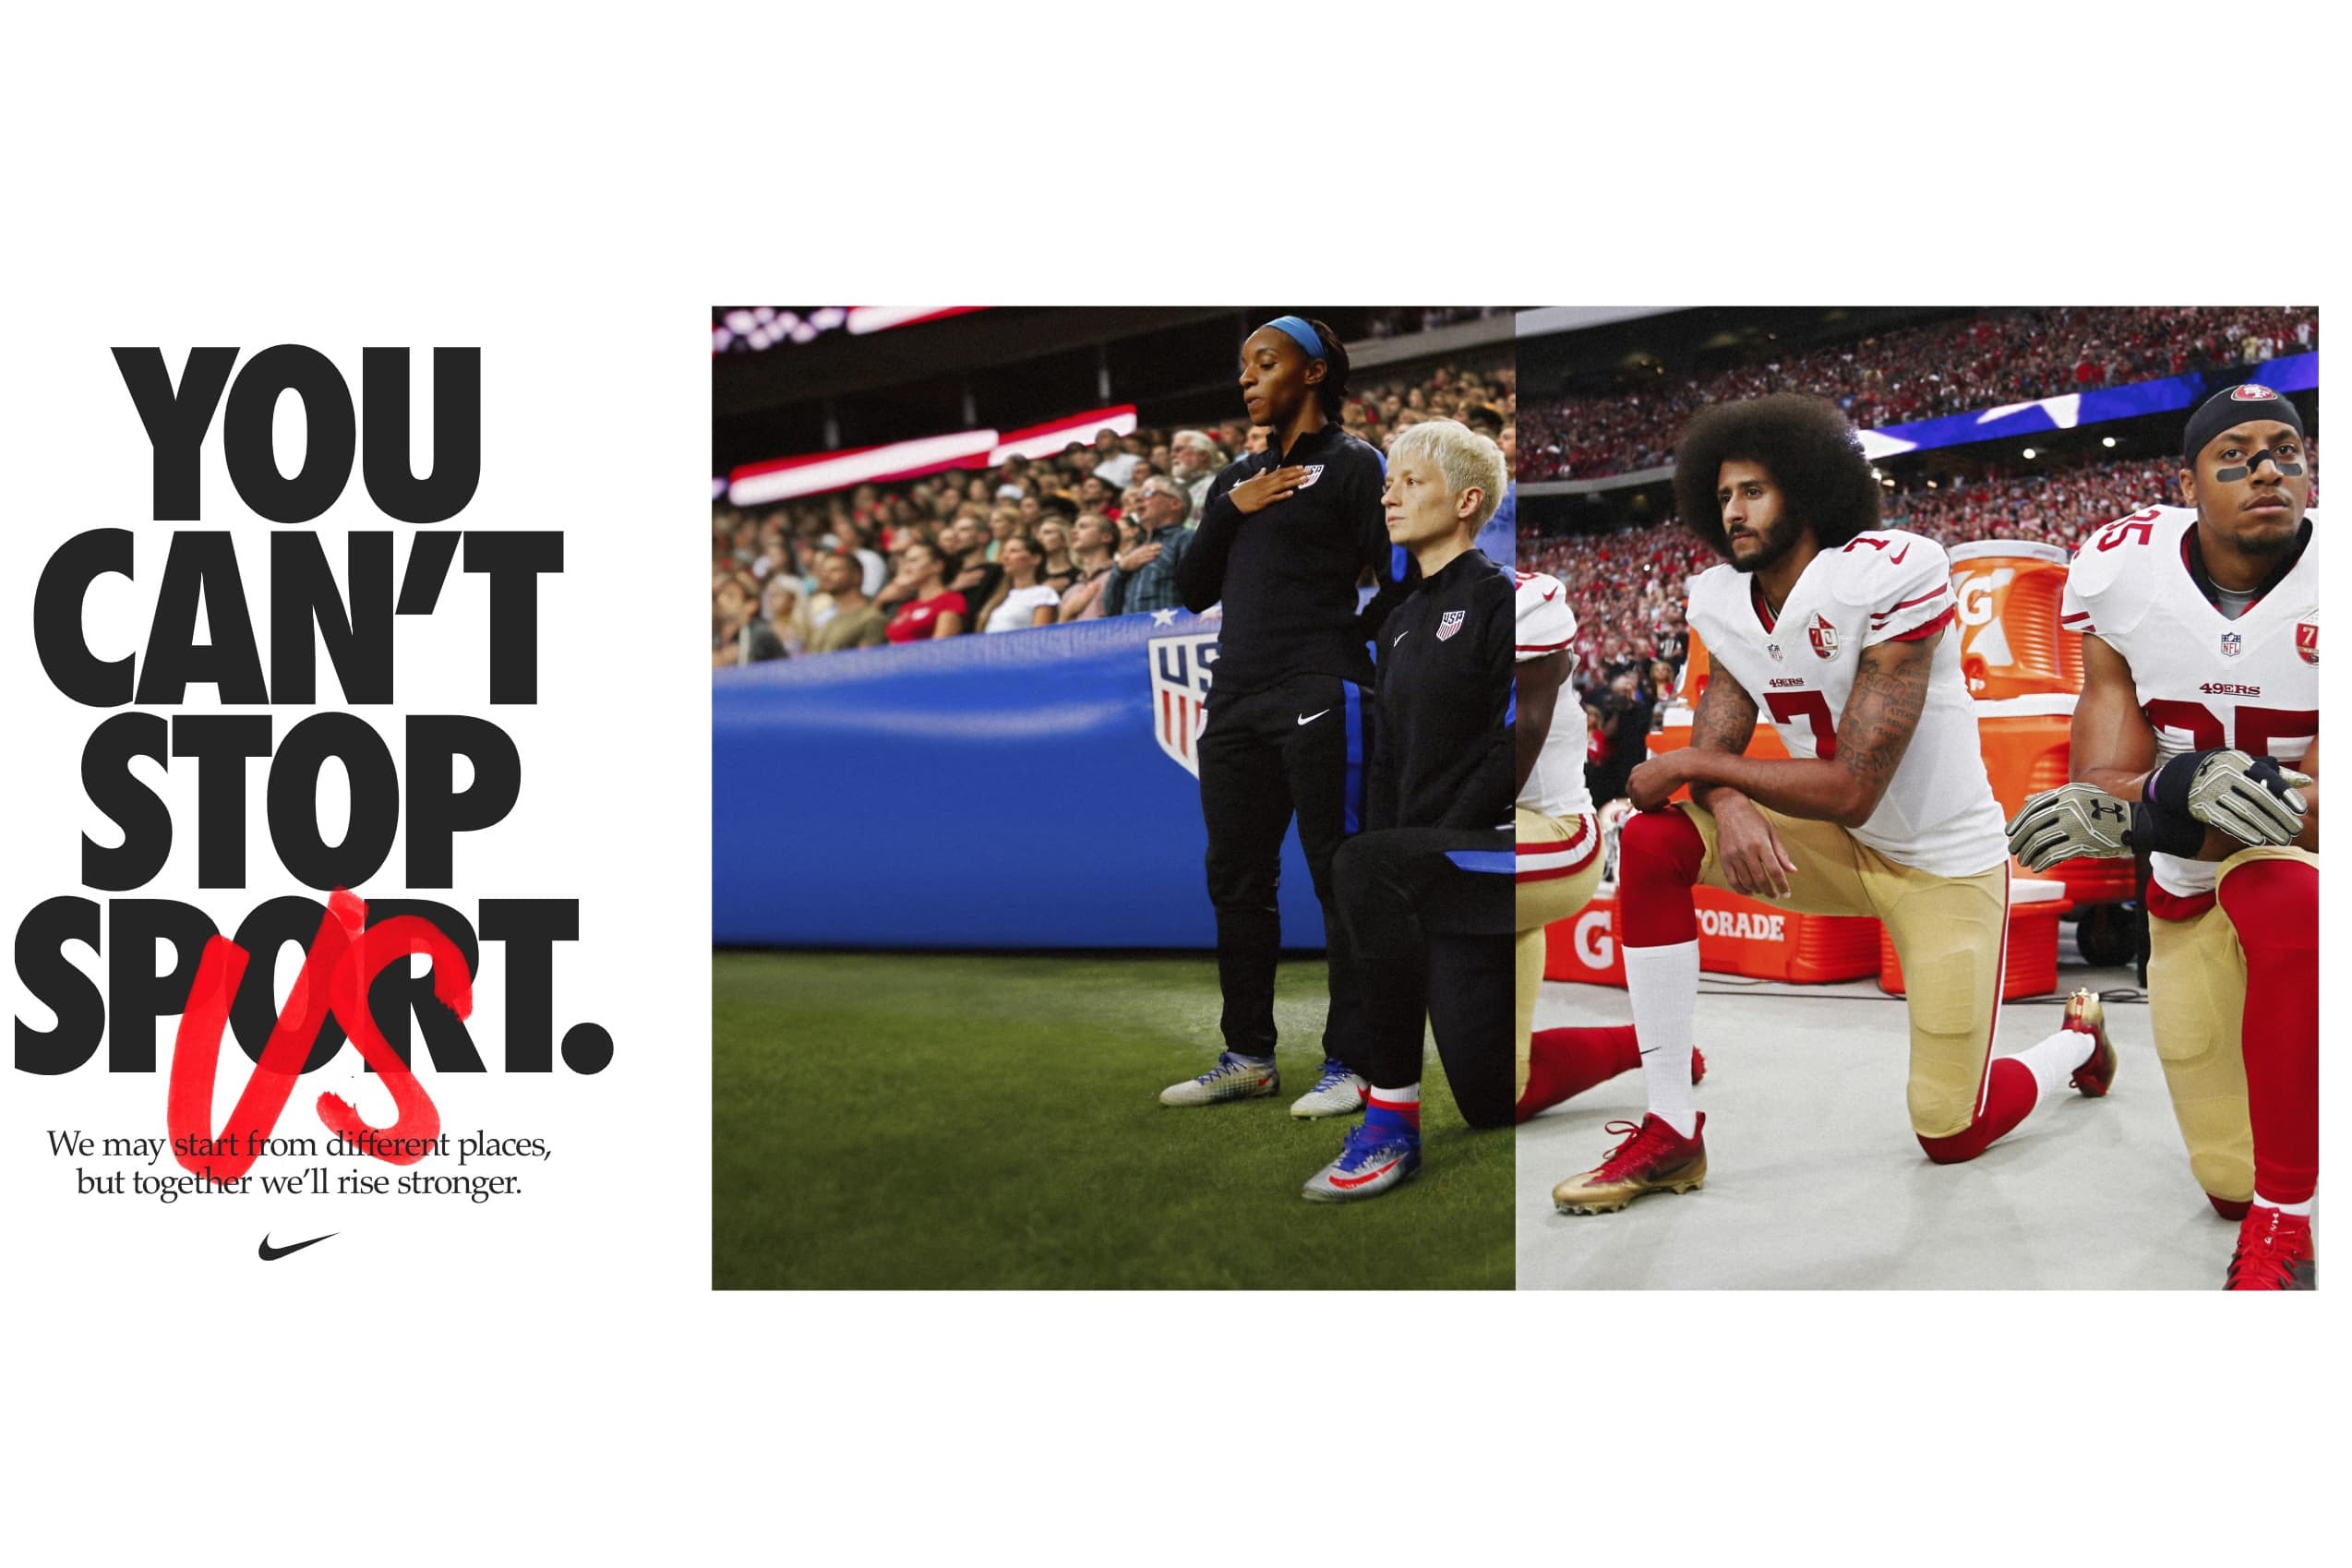 Megan Rapinoe Speaks Out About Race And Change In Nike Campaign